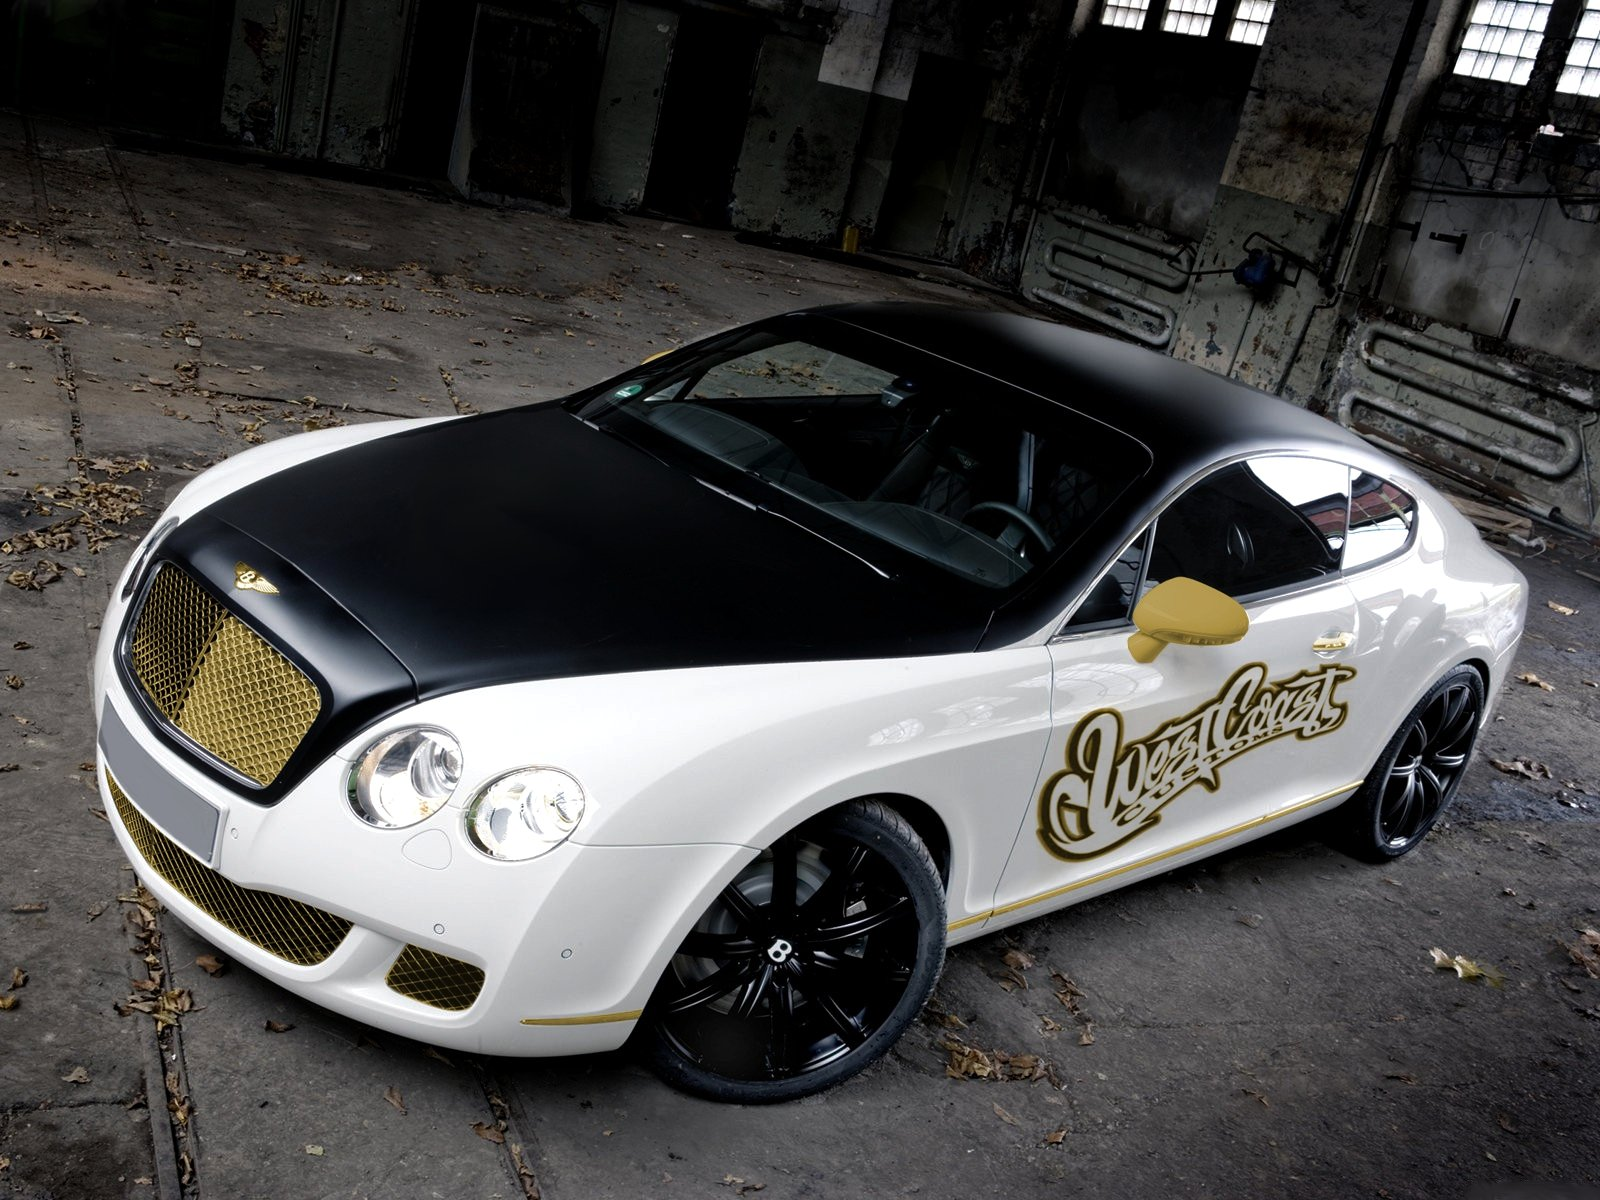 Custom Modified Bentley Luxury Car Wallpaper   Psytube 1600x1200